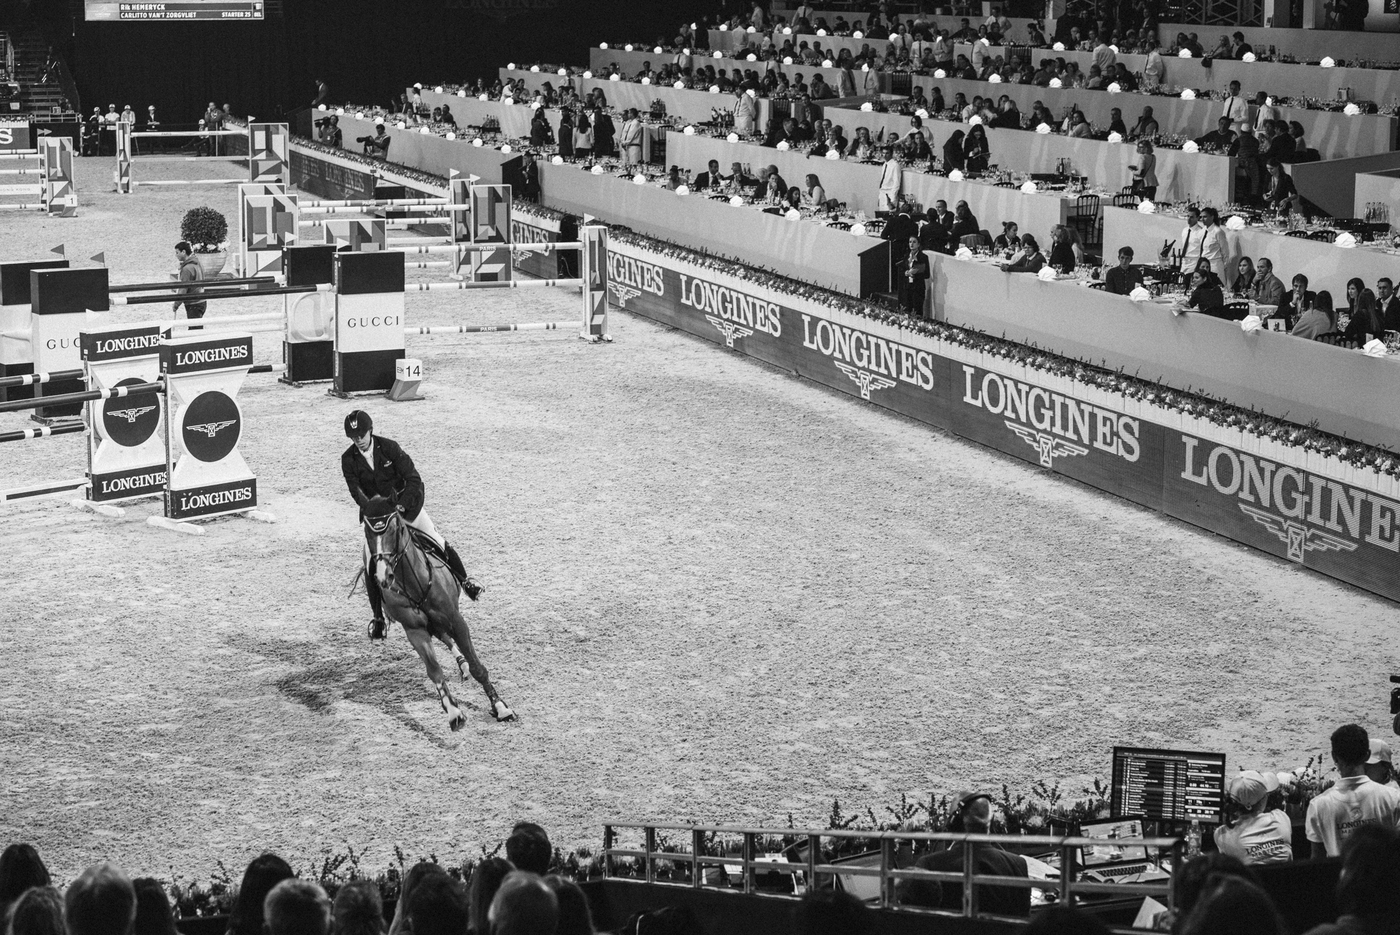 Longines Show Jumping Event: Longines is looking forward to seeing the top international riders competing in the glamorous atmosphere of the Longines Masters of Paris 4